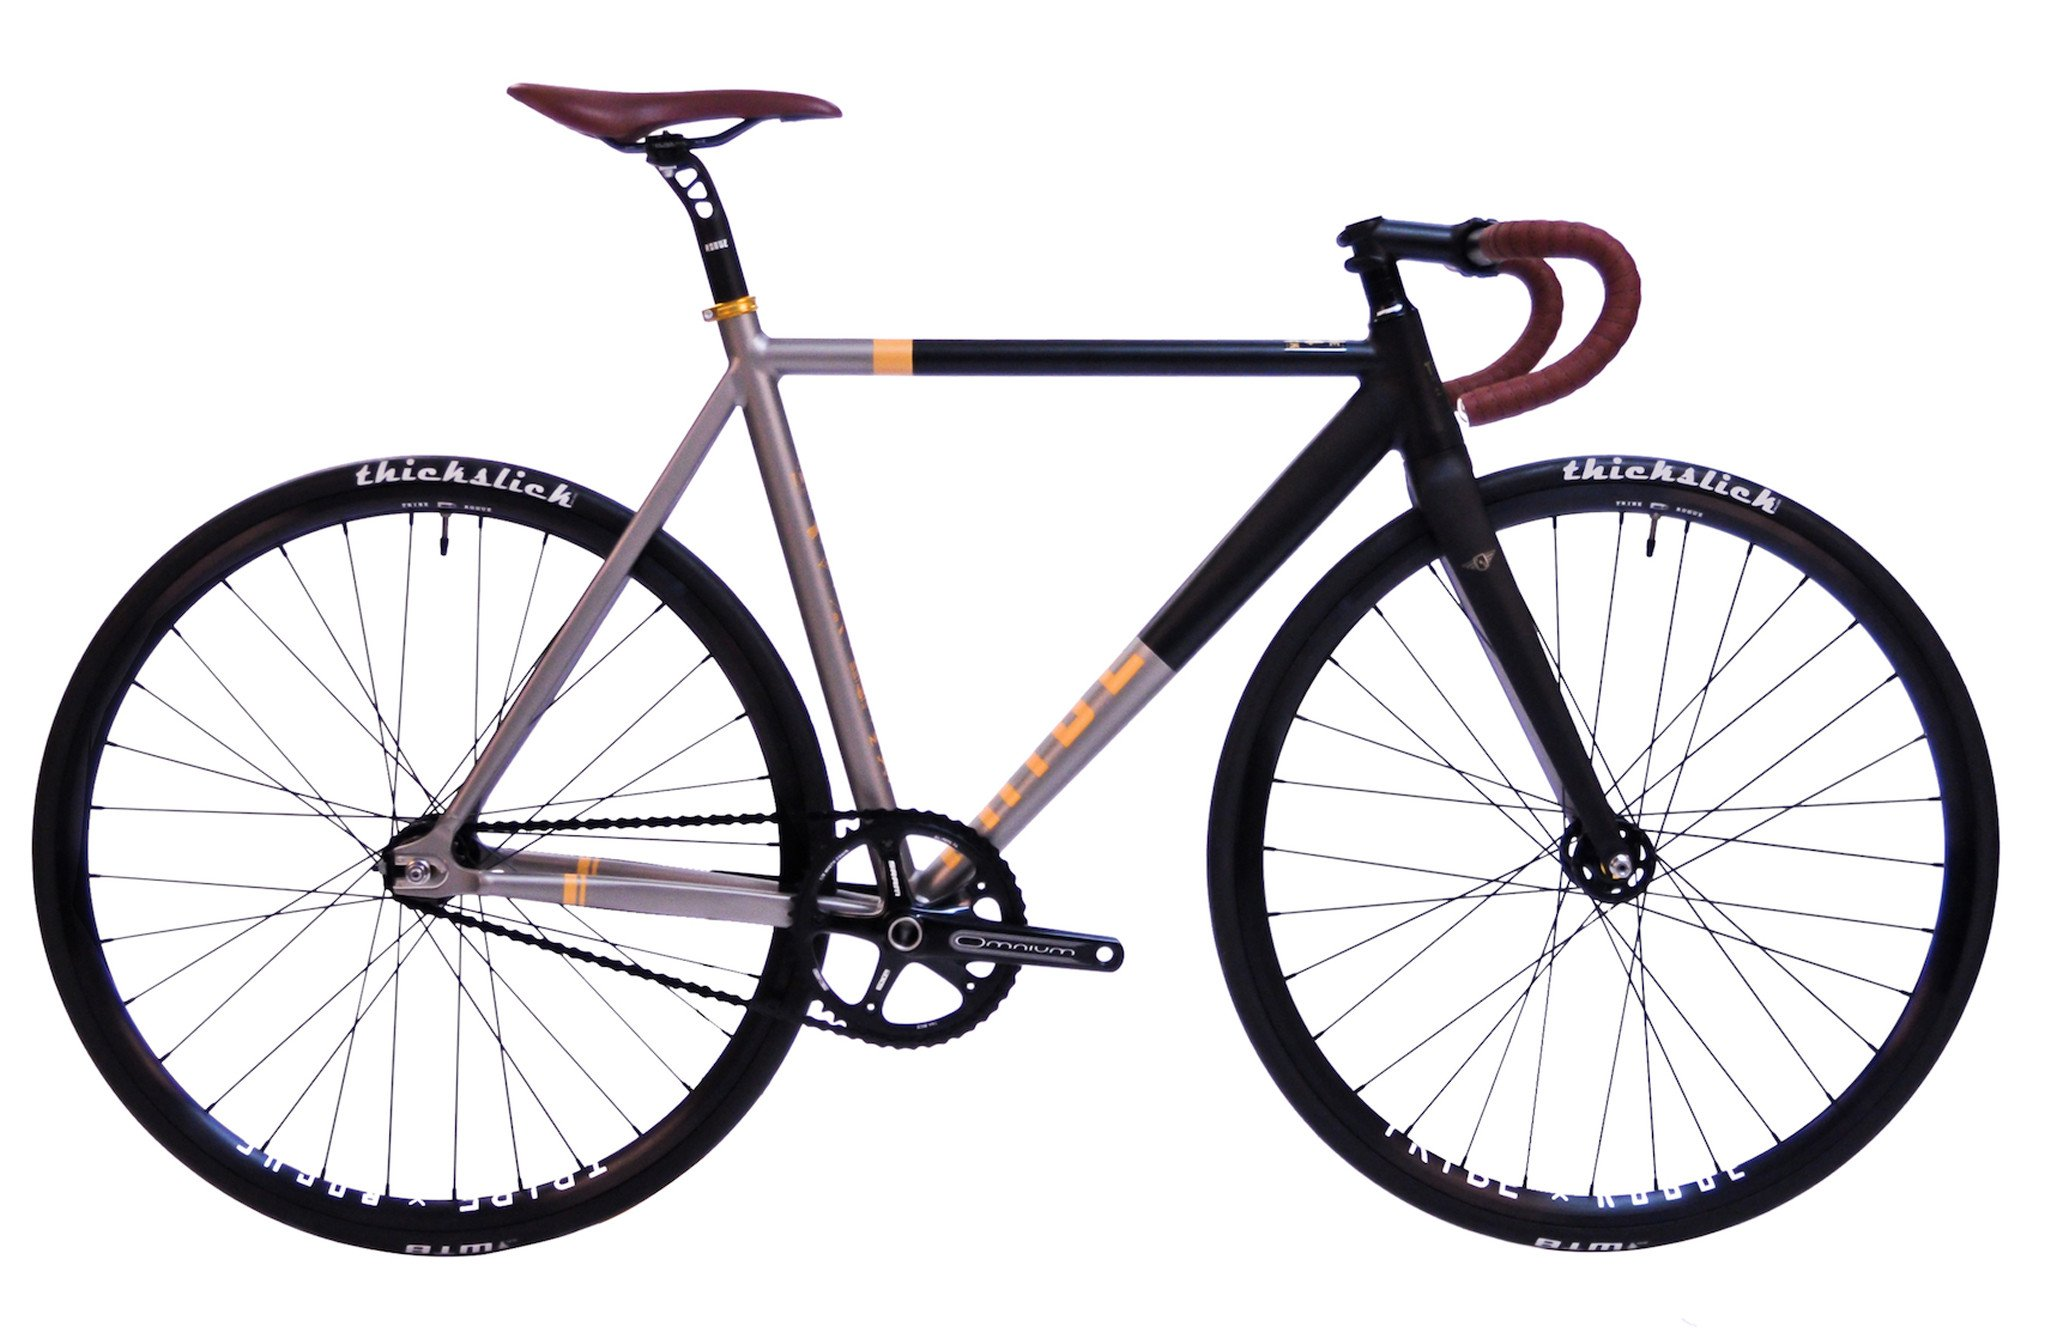 Tribe Bicycle Co. Cafe Racer